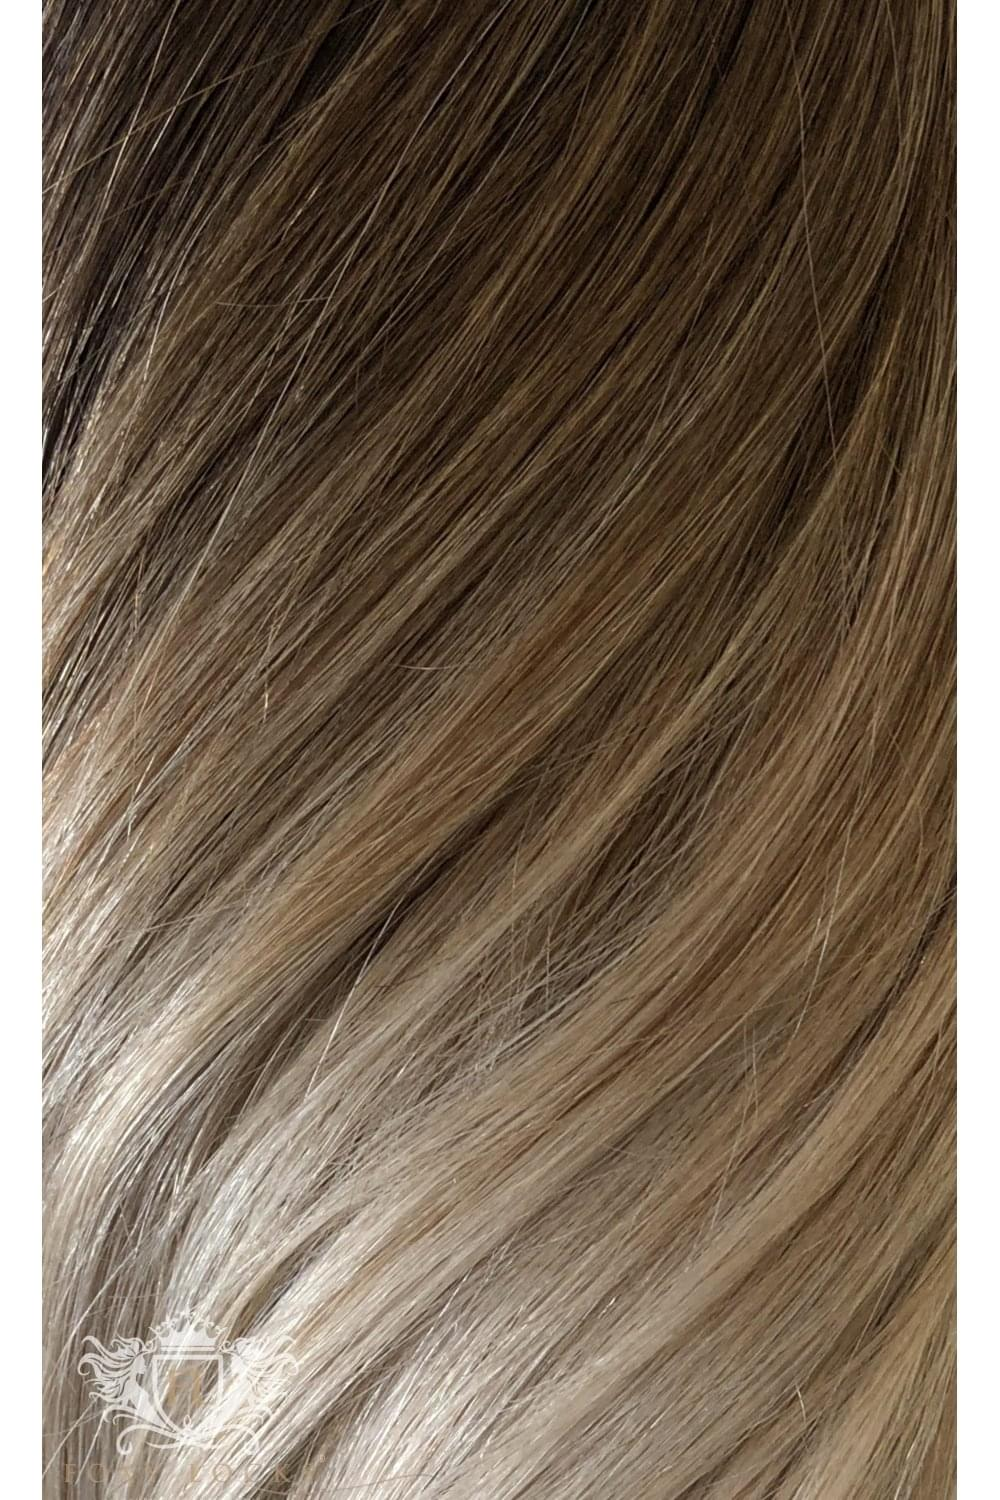 Vanilla Frappe Deluxe 20 Quot Seamless Clip In Human Hair